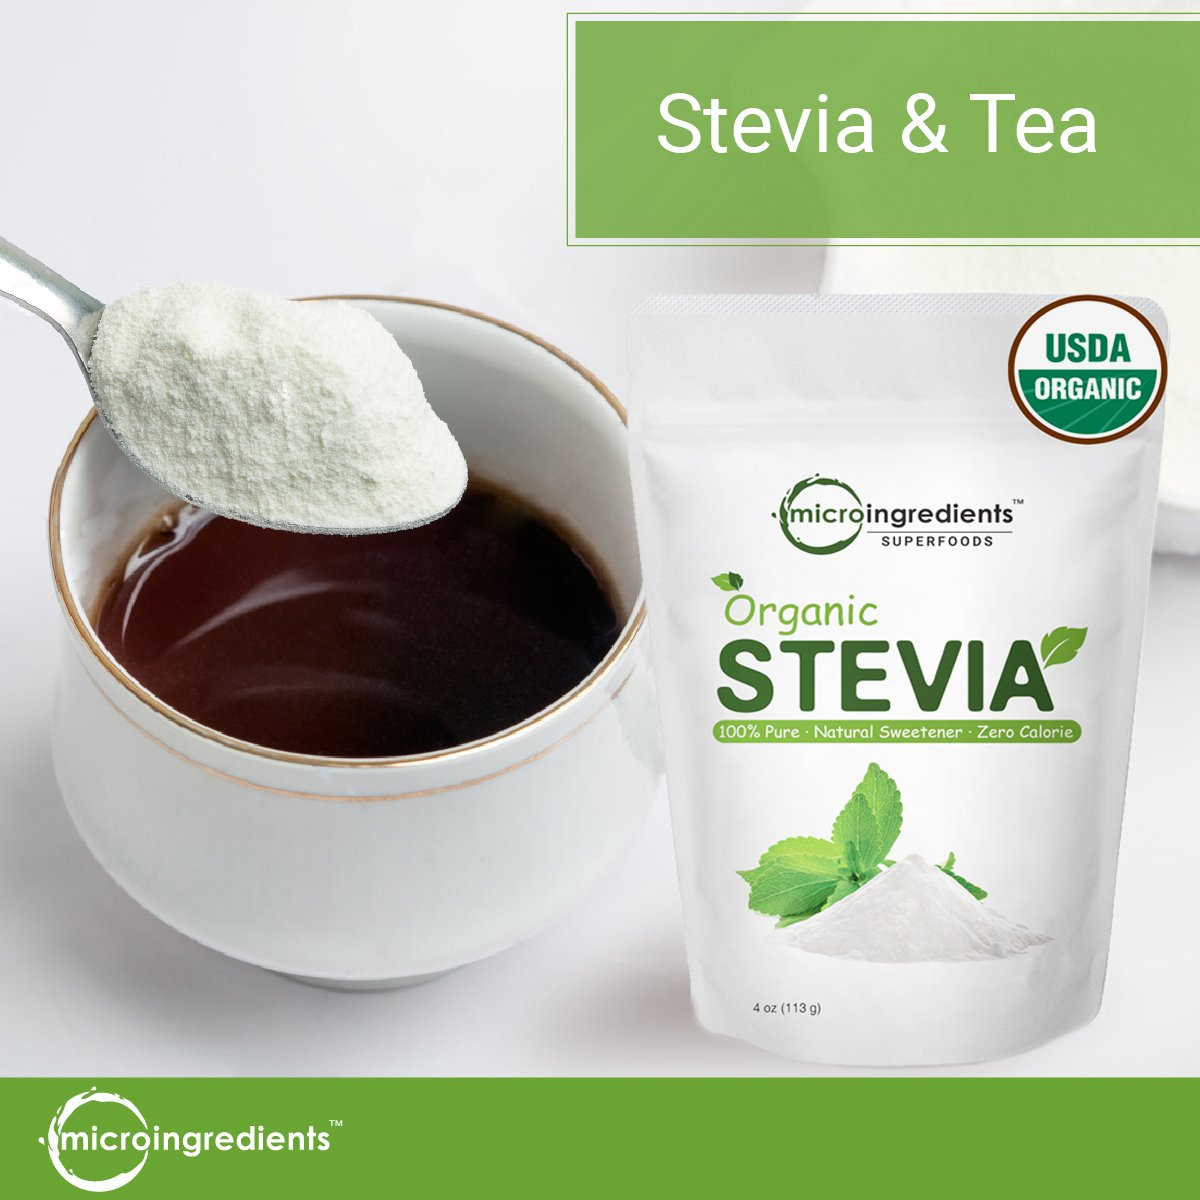 Pure Organic Stevia Powder, 8 Ounce, 1418 Serving, 0 Calorie, Natural Sweetener and Sugar Alternative, No GMOs and Vegan Friendly by Micro Ingredients (Image #5)